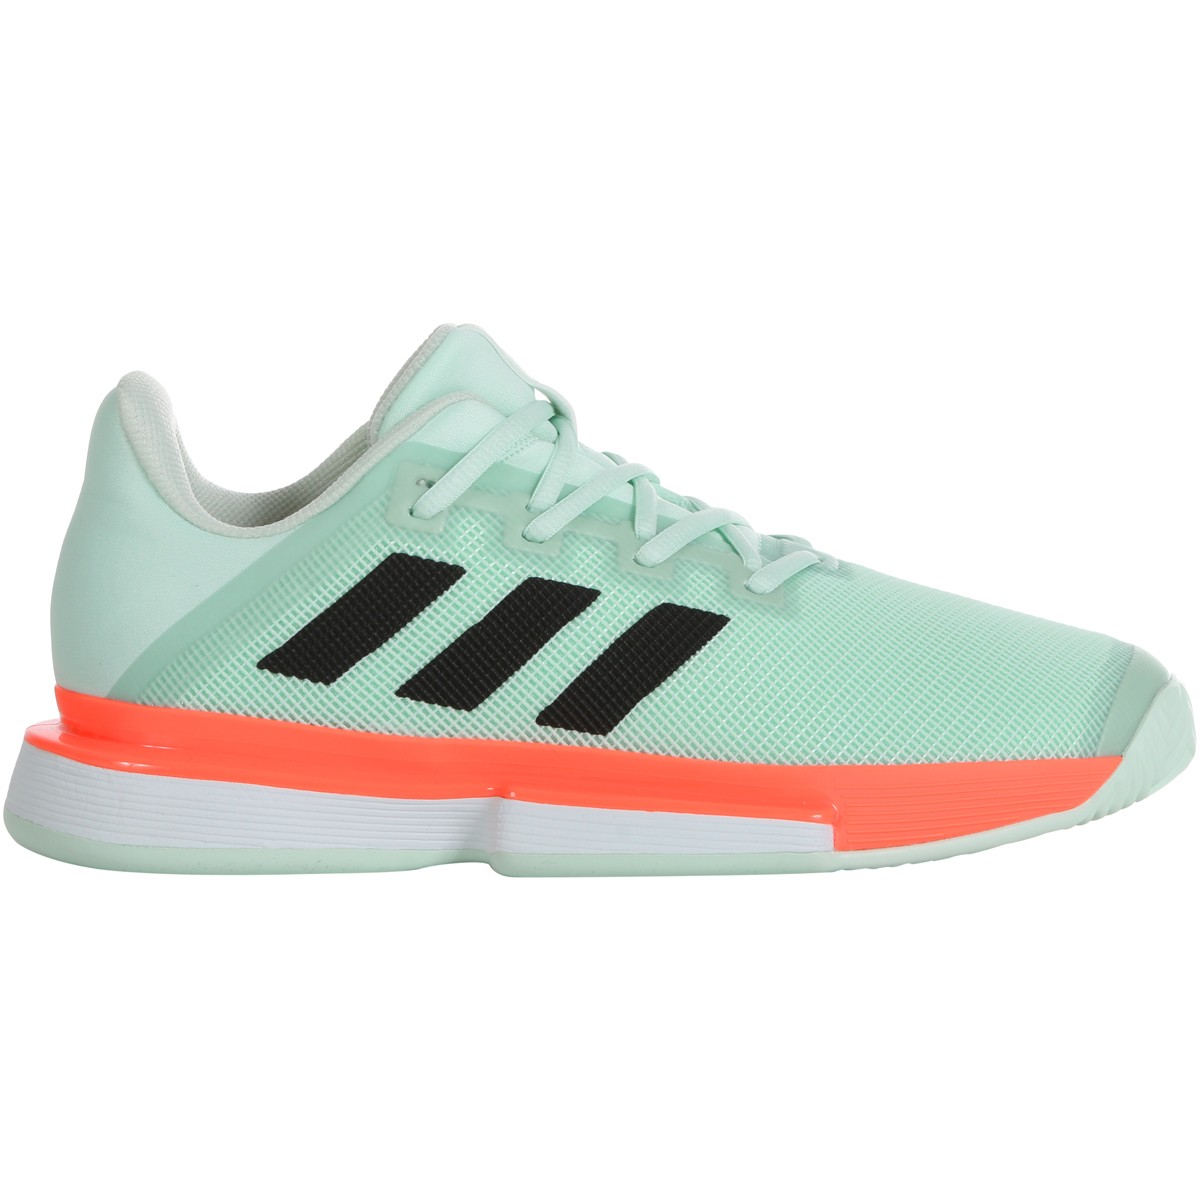 solematch toutes surfaces adidas bounce Chaussures n0wPkO